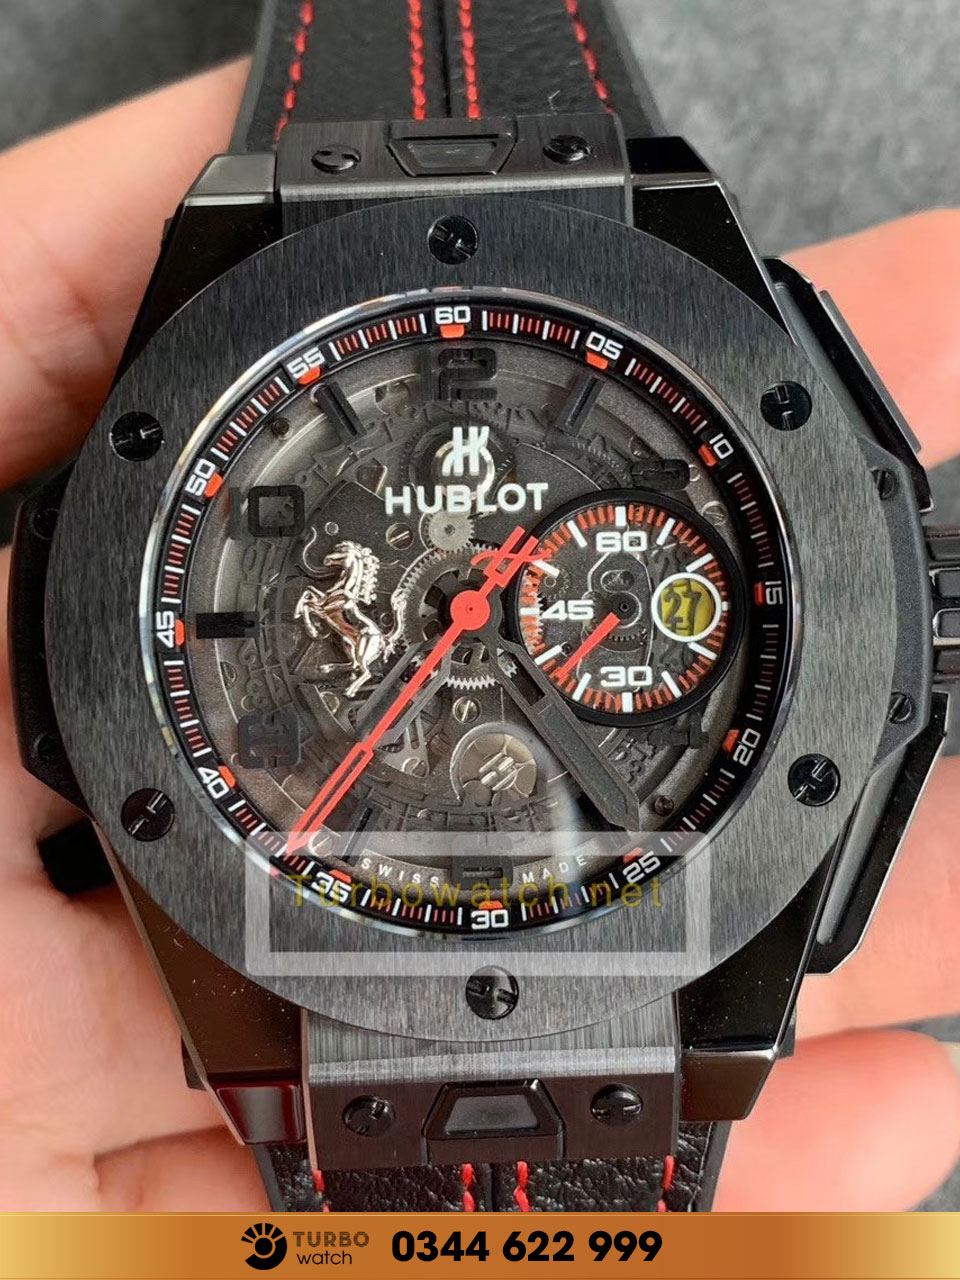 HUBLOT BIG BANG UNICO FERRARI TITANIUM LIMITED EDITION fake 1-1 siêu cấp